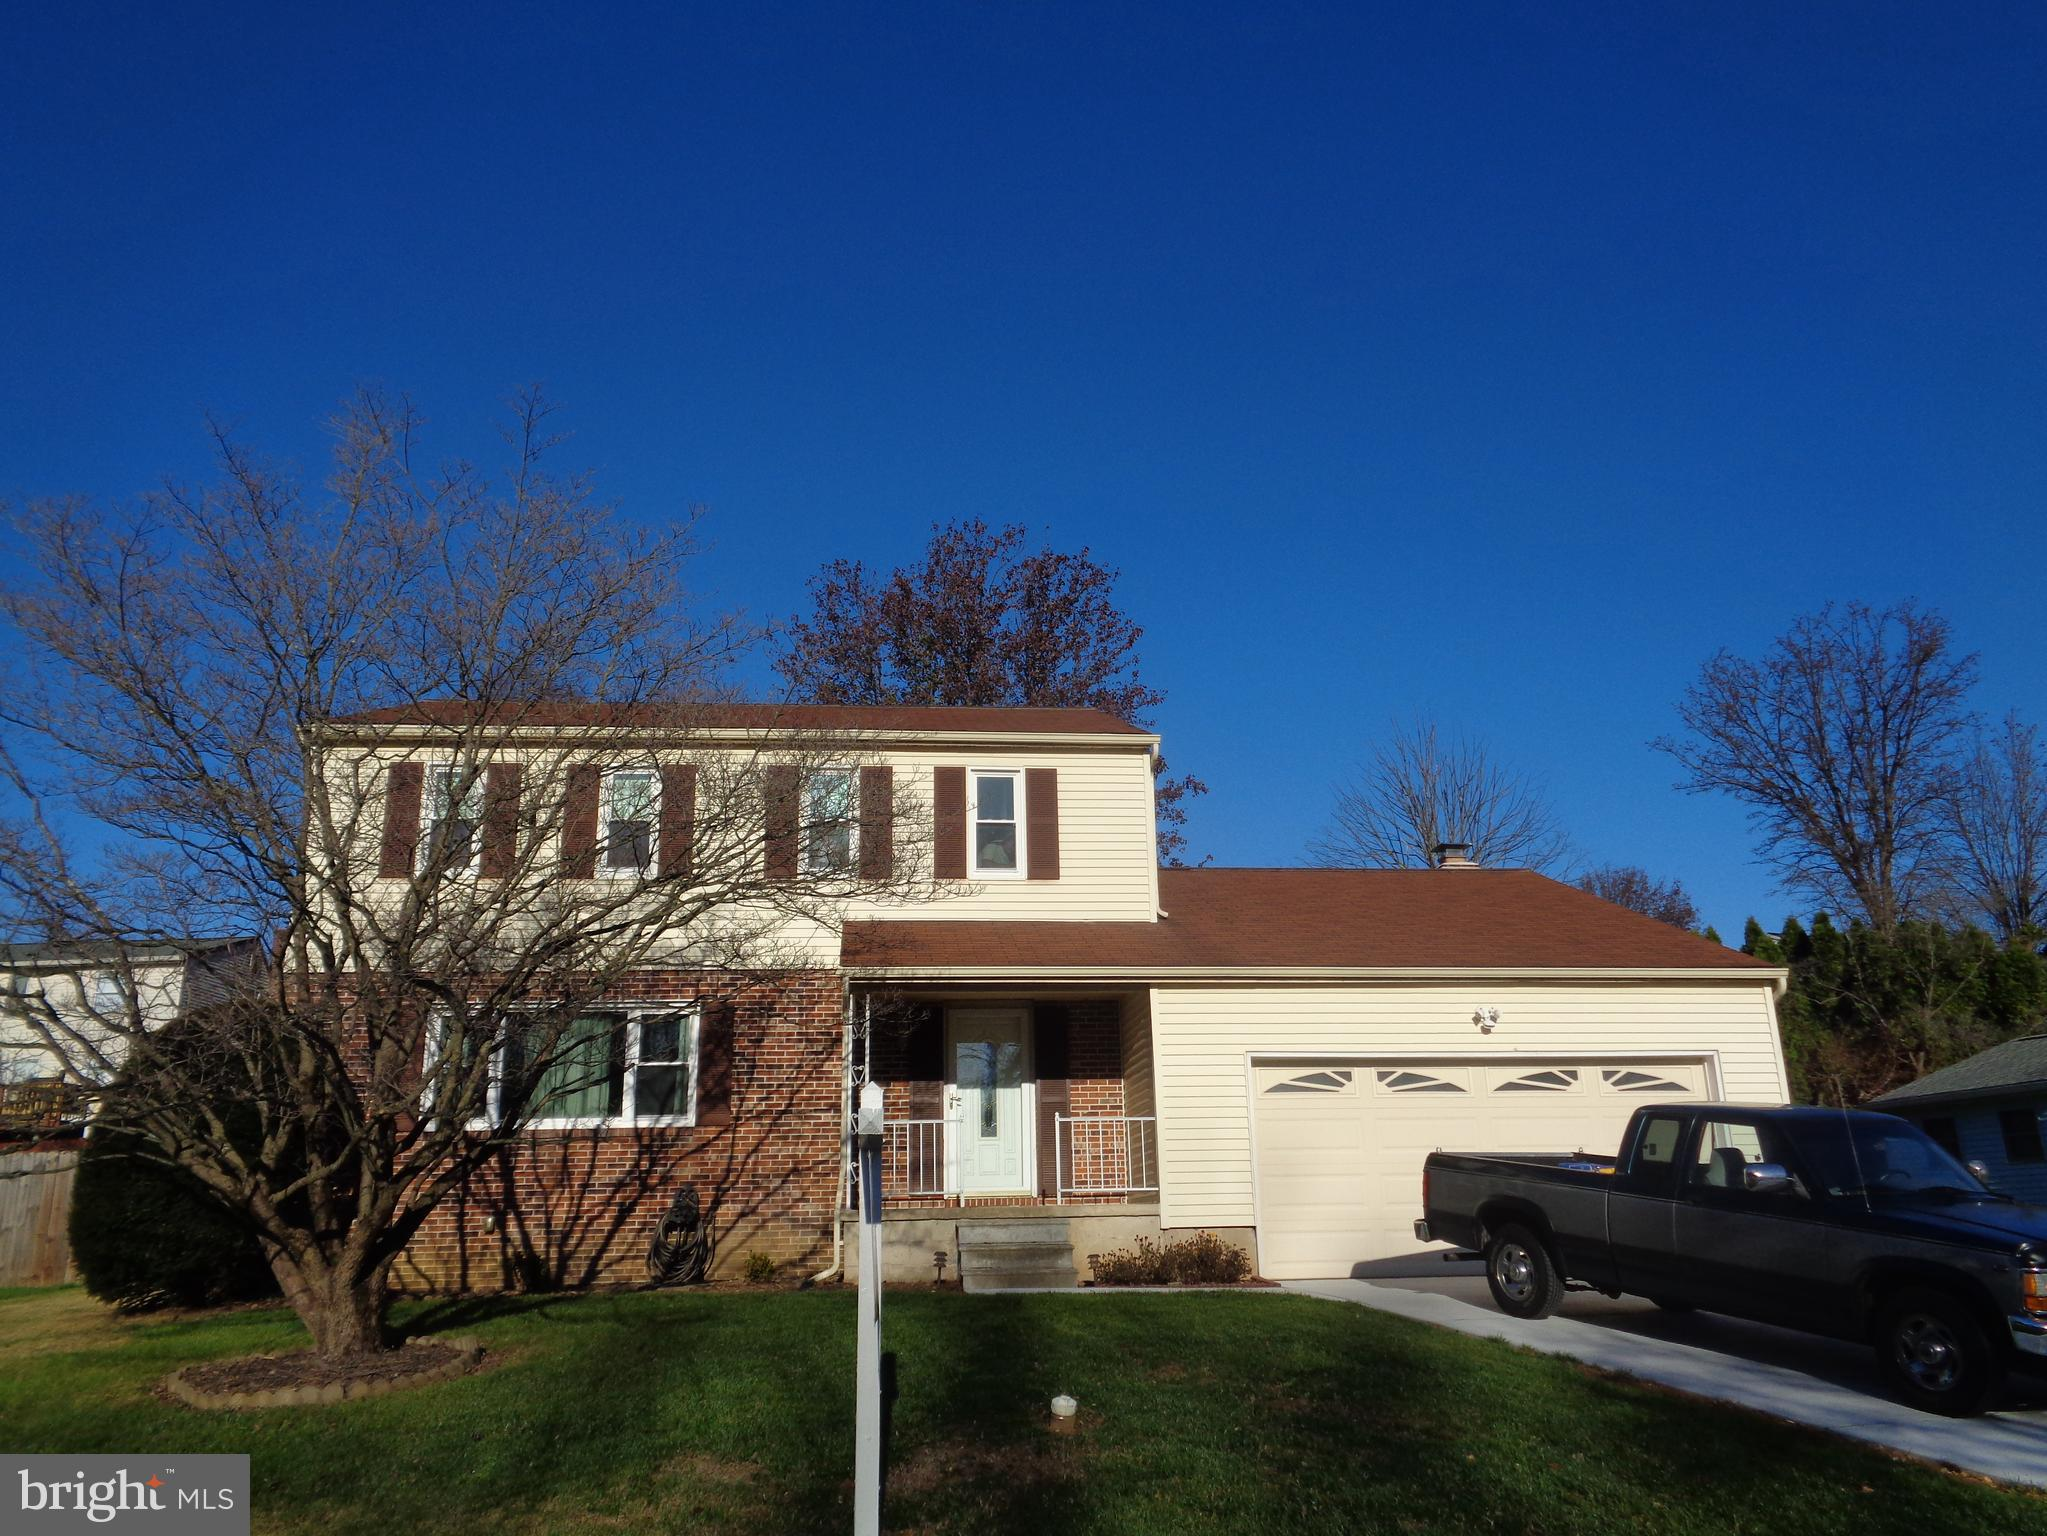 4 Bedroom 2-2 Bath Colonial with 2 car garage,  Updated Kitchen with Granite Counters and Stainless